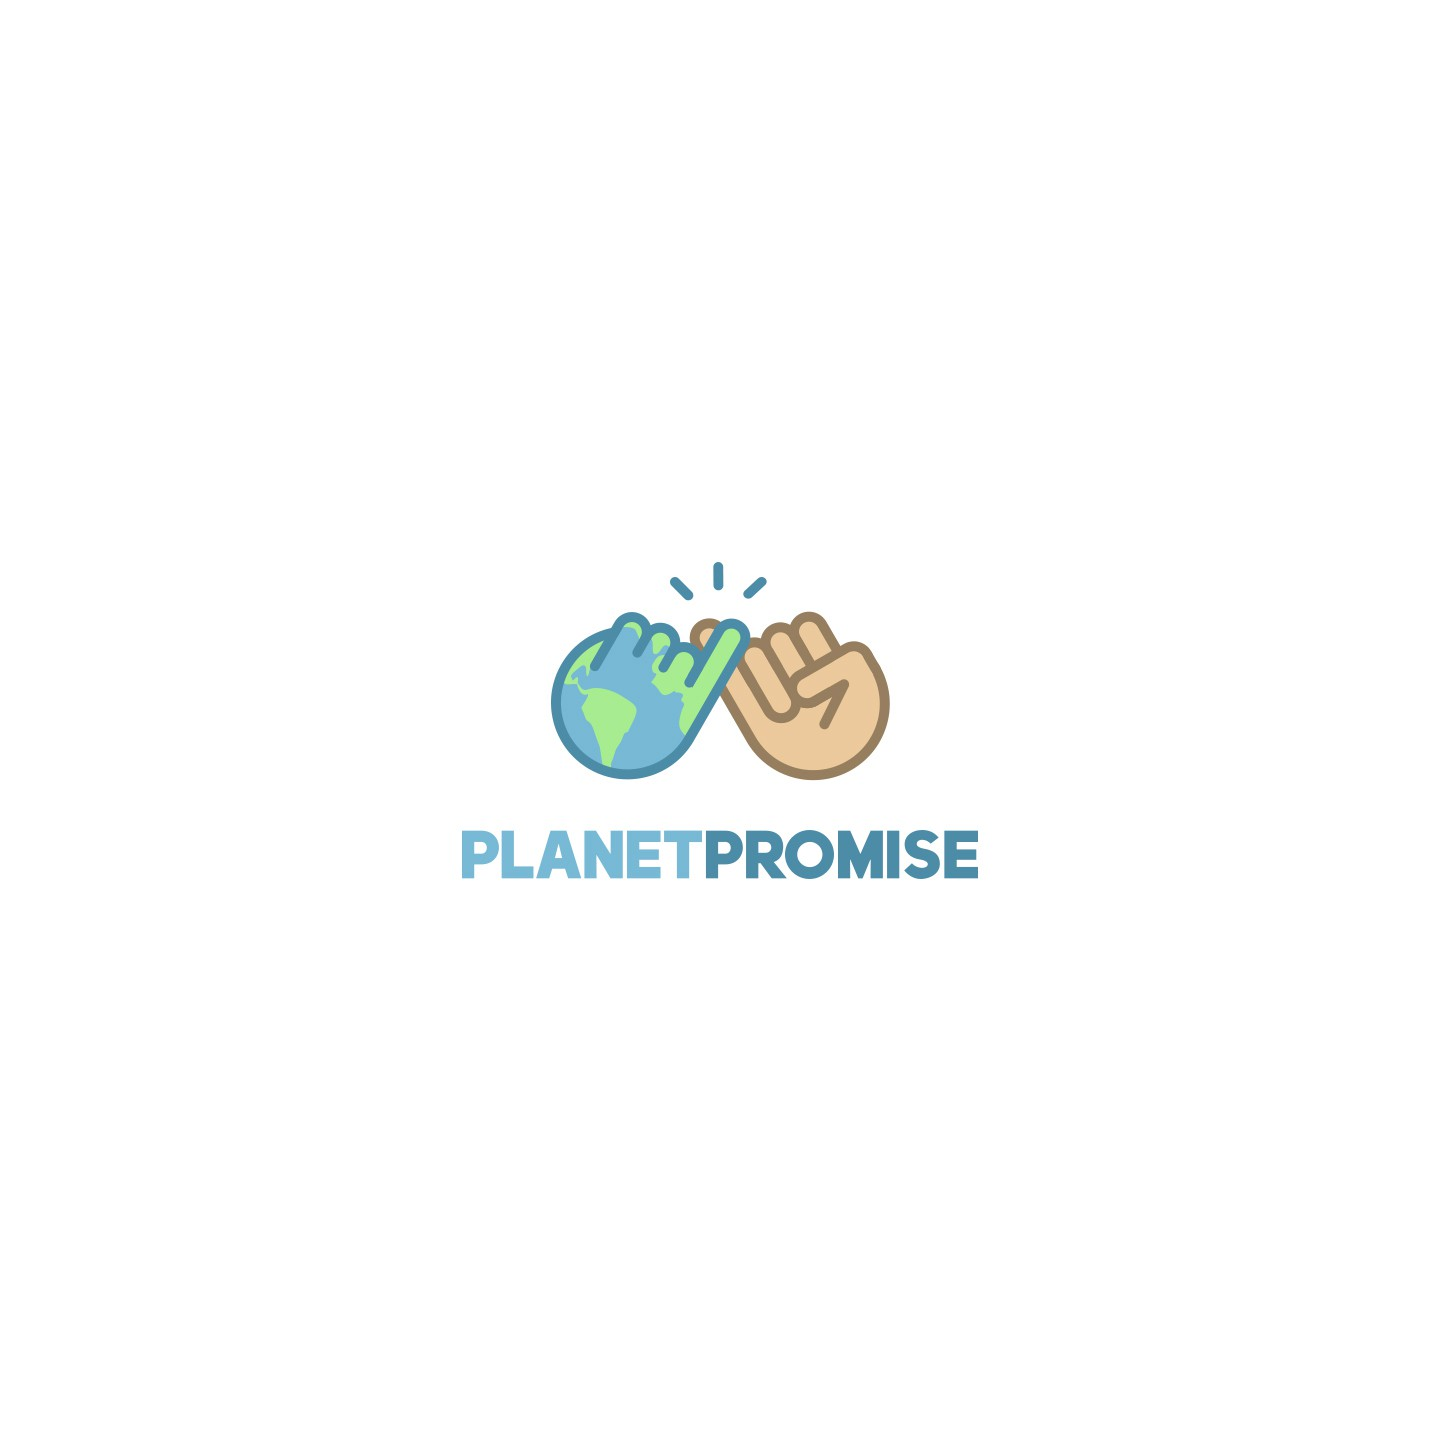 Planet Promise - logo design to inspire others to take action on climate change